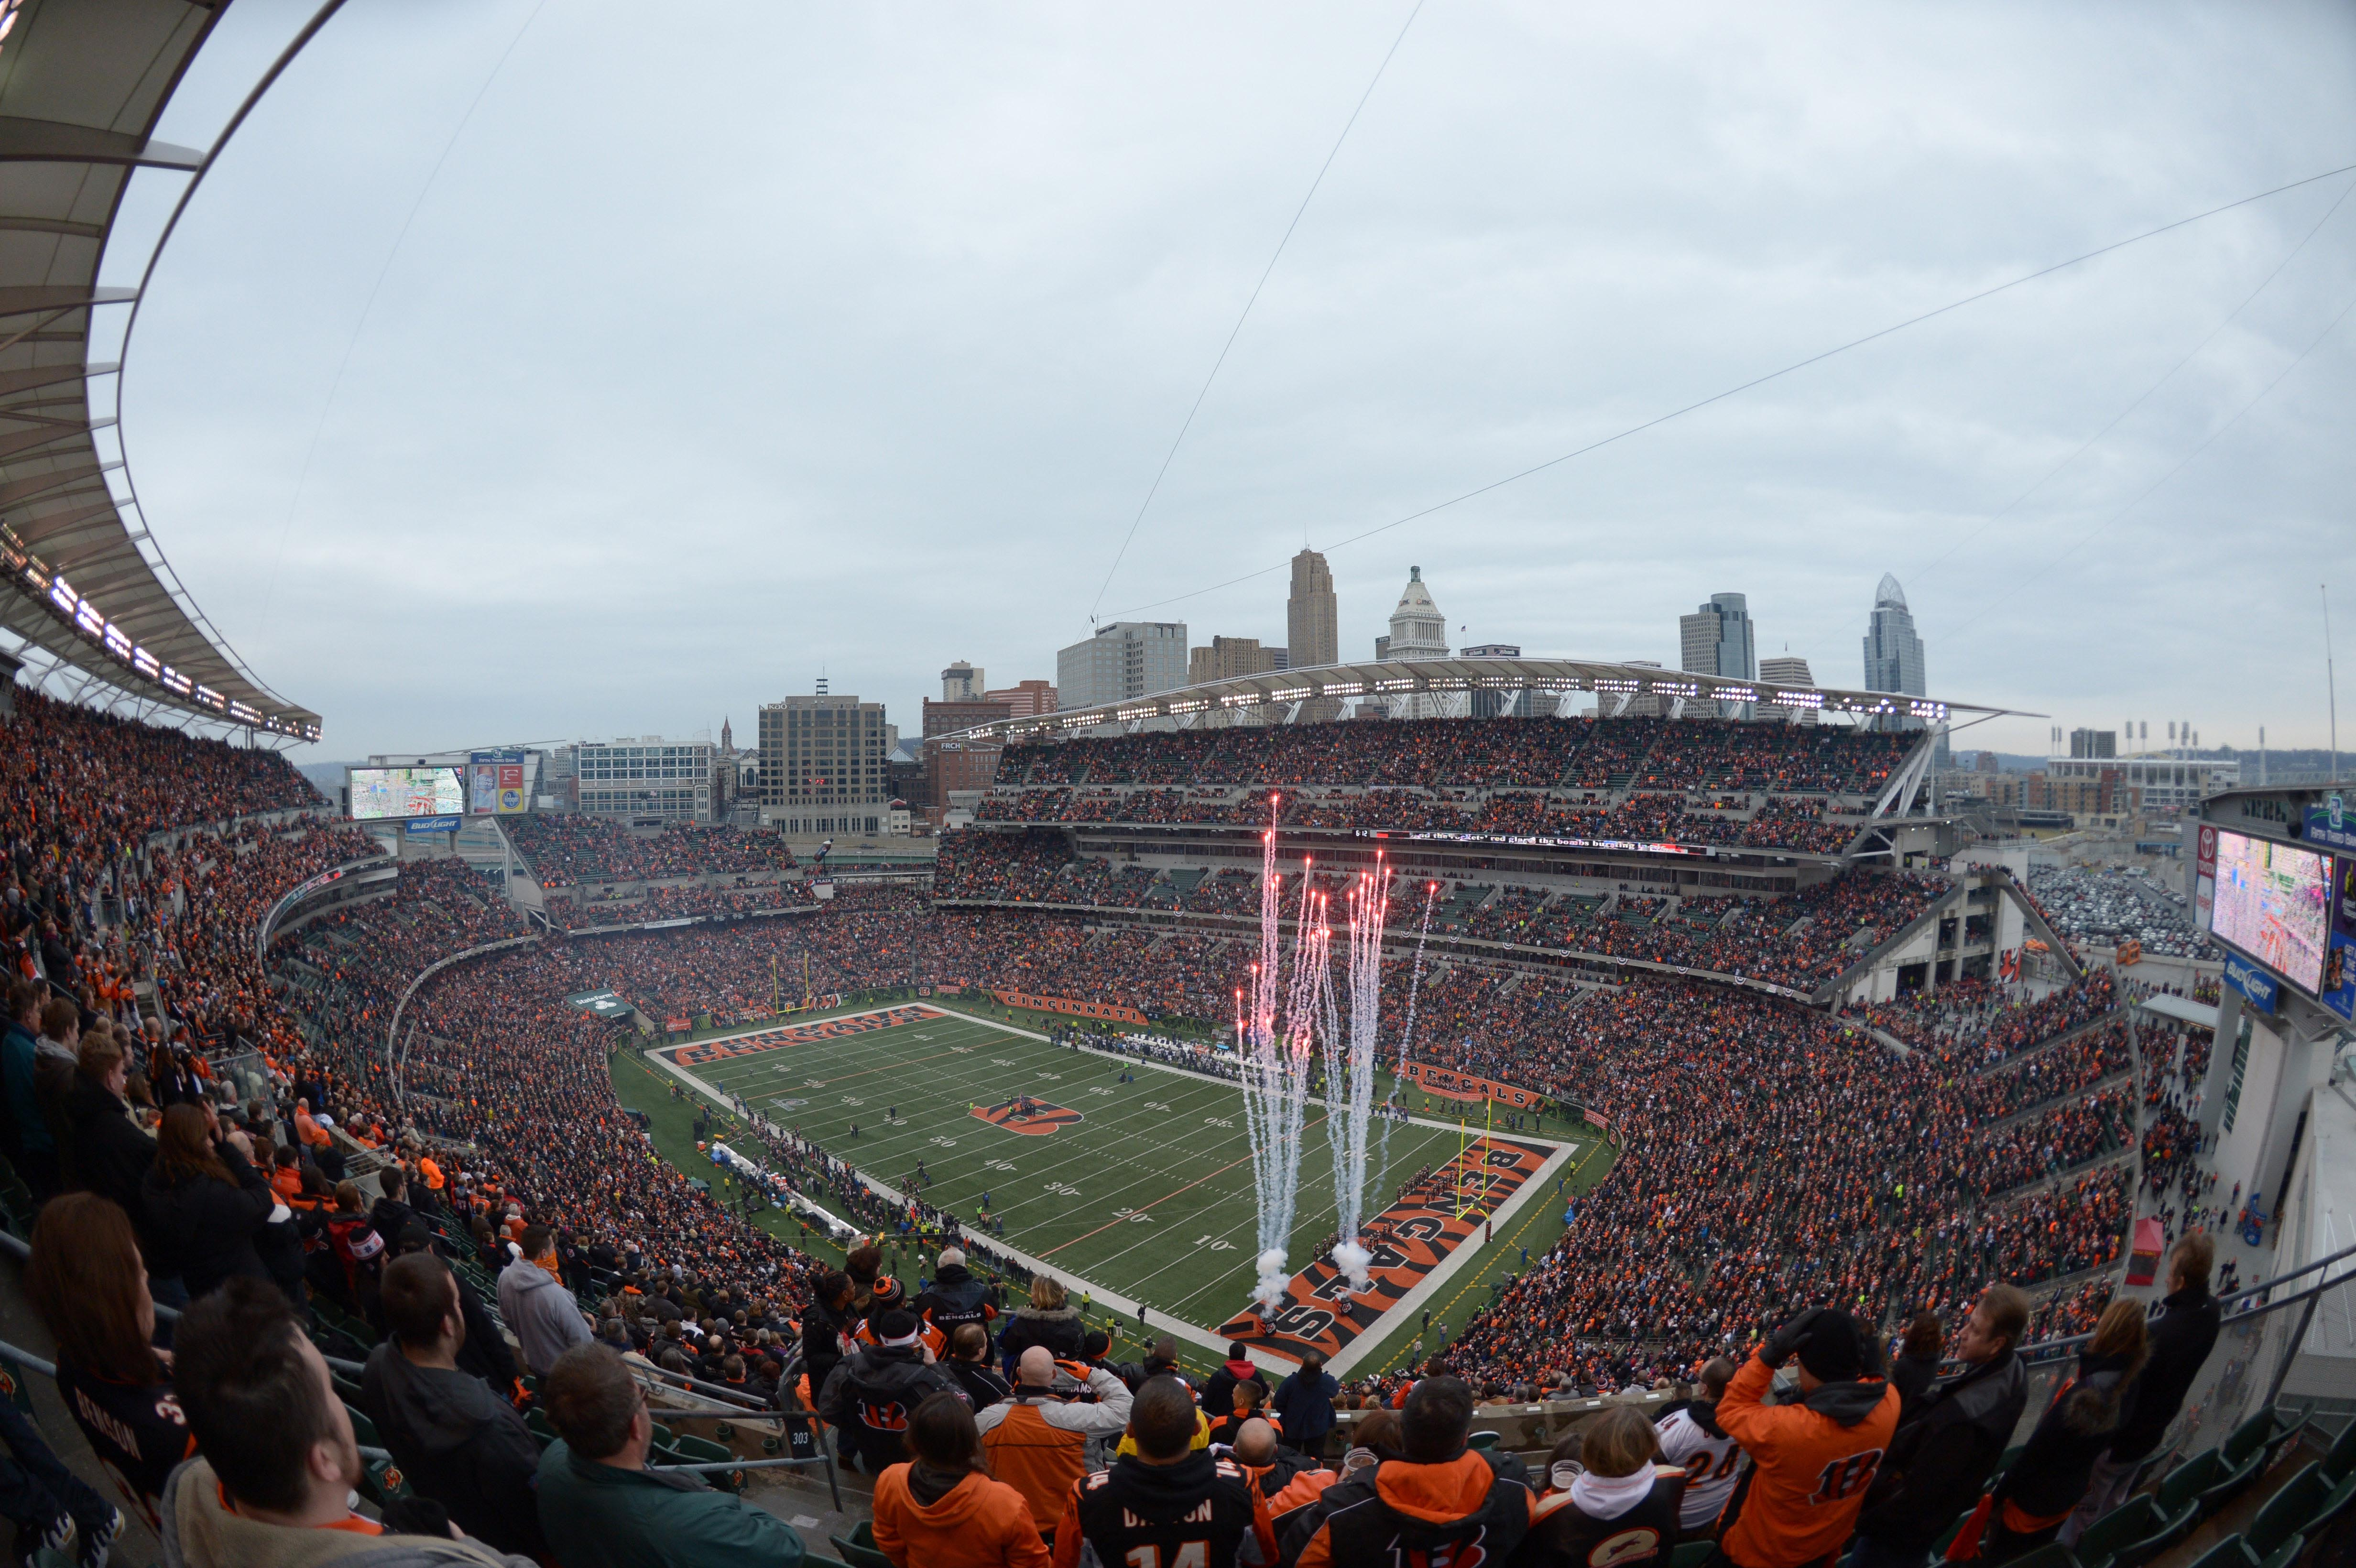 Can you imagine the smell of this stadium after these fans eat Skyline Chili?